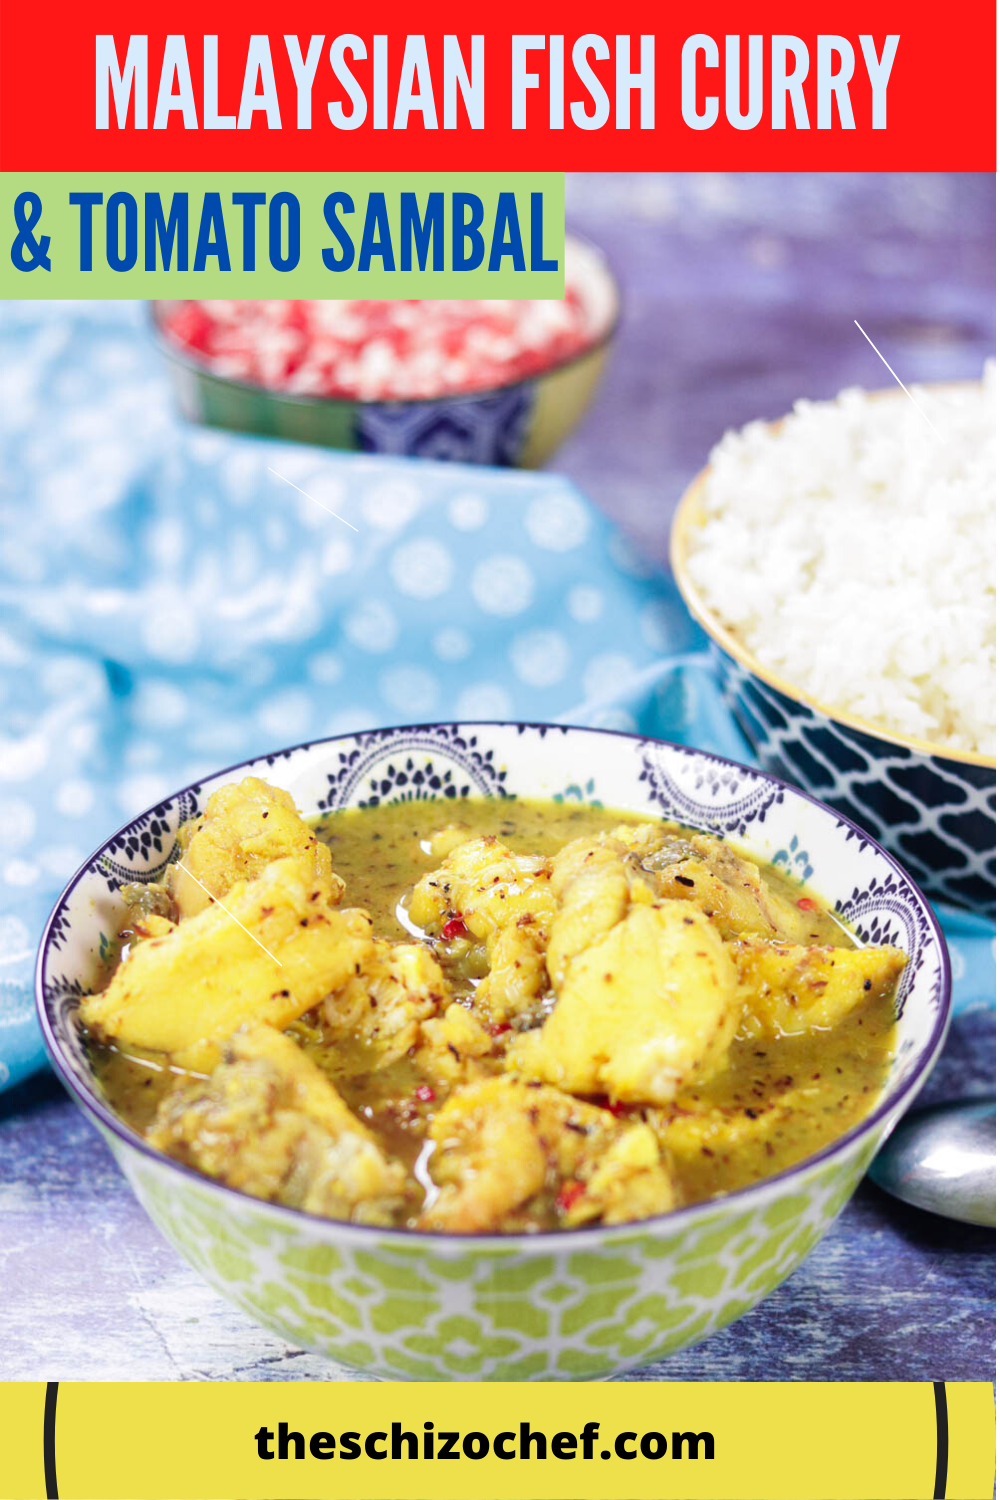 Malaysian Fish Curry for Pinterest